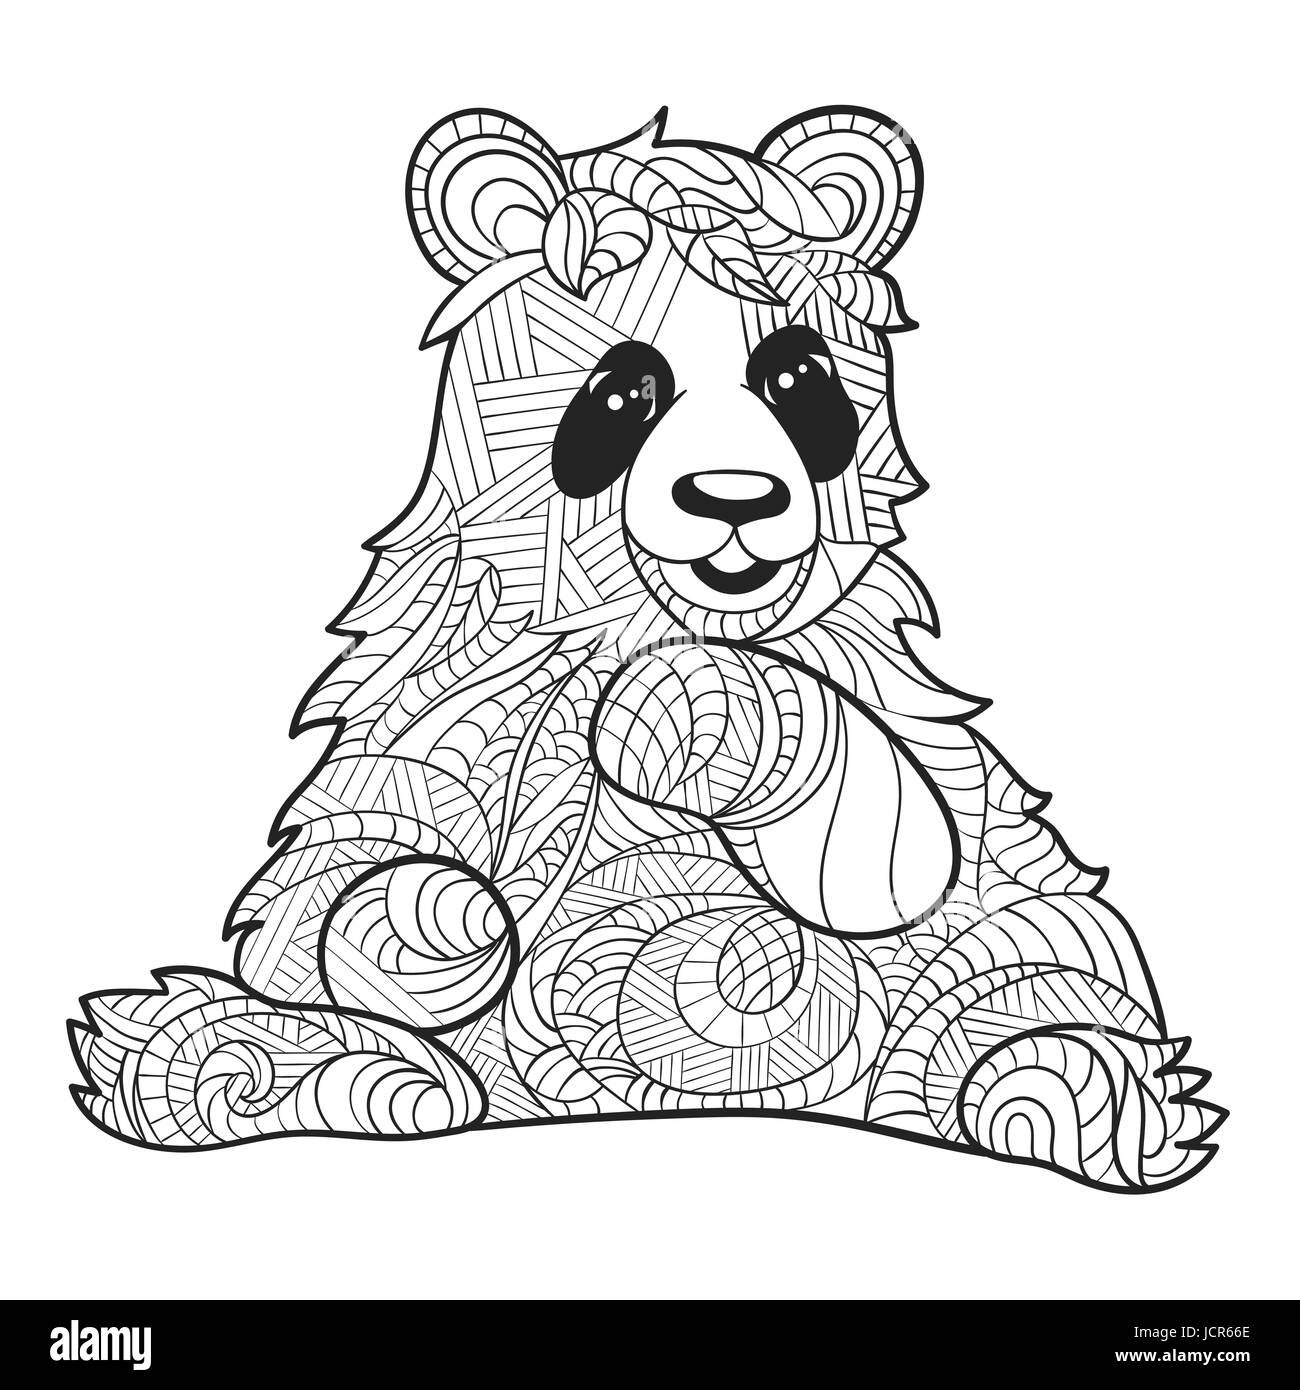 Vector Monochrome Hand Drawn Zentagle Illustration Of Panda Bear Coloring Page With High Details Isolated On White Background Boho Style Sitt